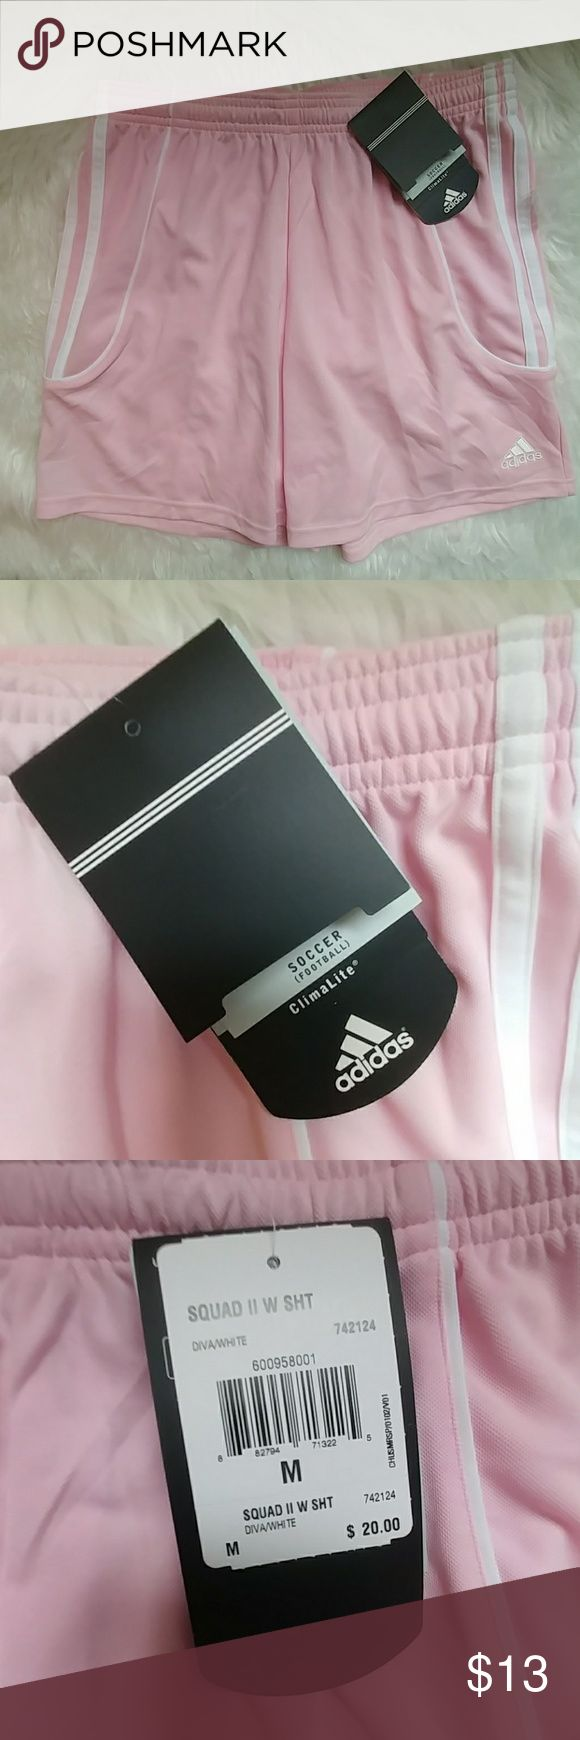 Adidas Soccer Shorts NWT Adidas soccer shorts in light pink.  Size Medium. Climate controlled fabric. Drawstring closure.  Brand new with tags!!  2004 classic style!  Garment shown on a medium sized model. Adidas Shorts